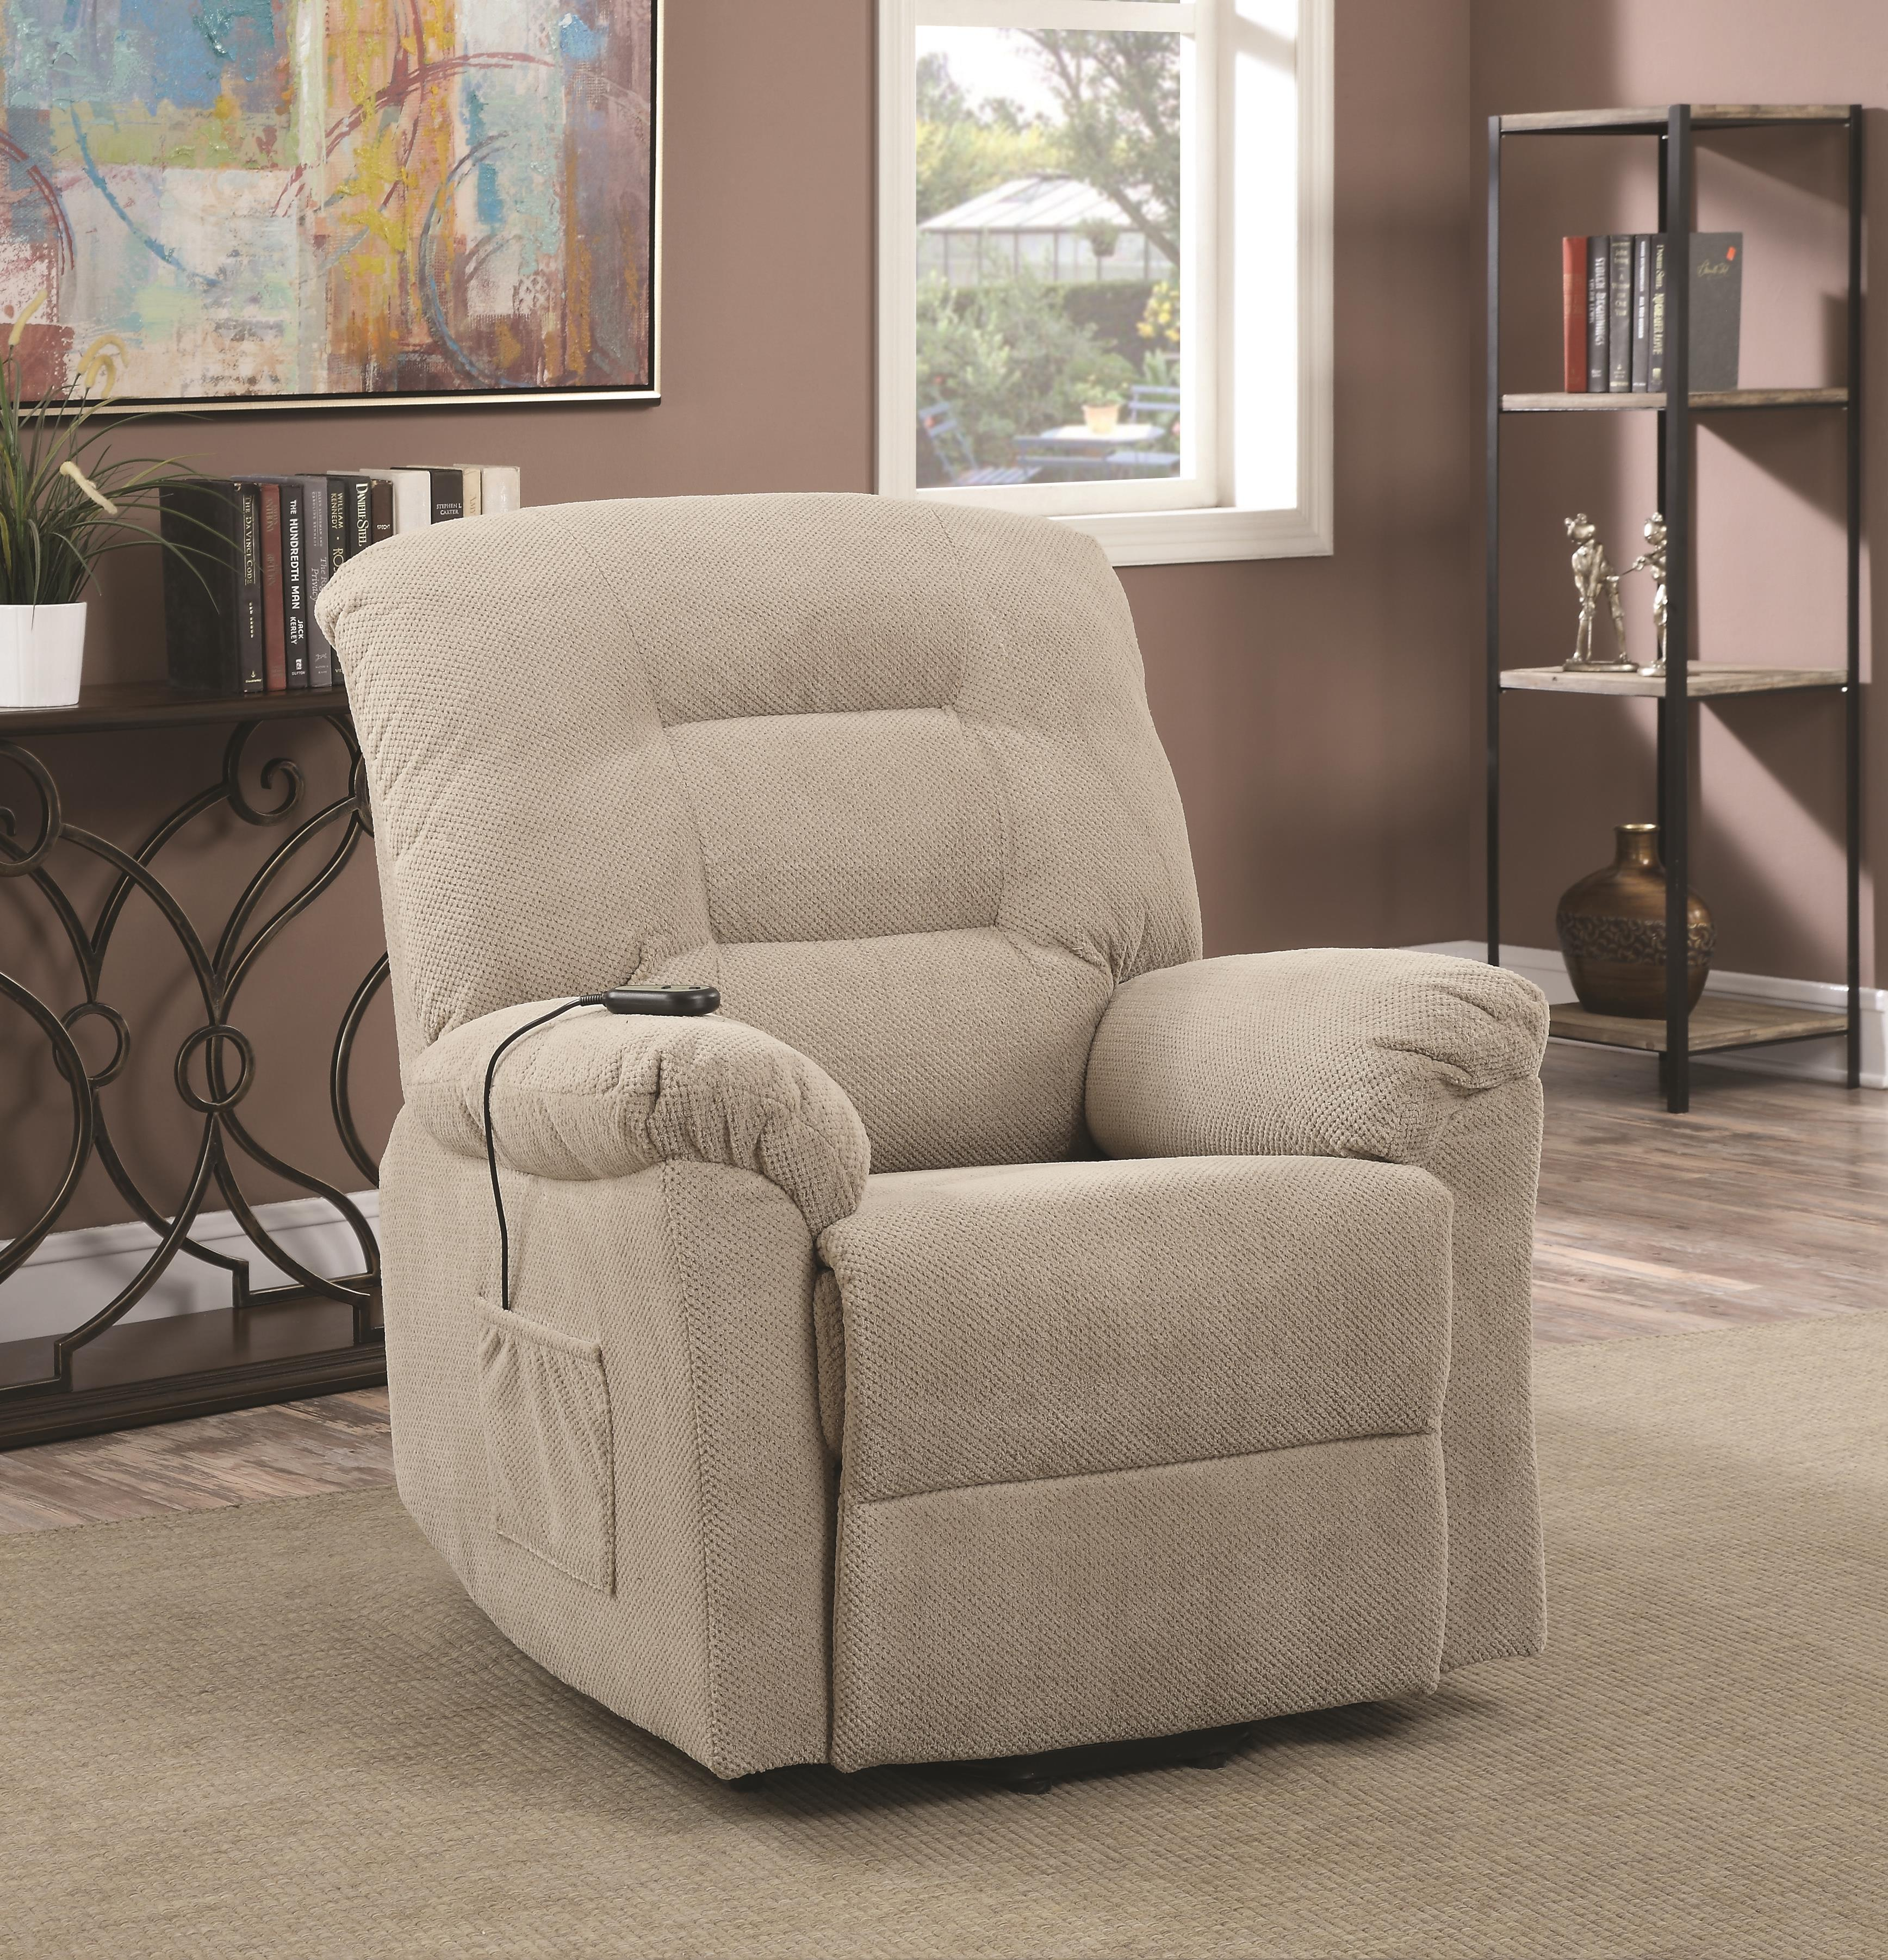 Value City Furniture Living Room Sets >> Coaster Recliners Power Lift Recliner | Value City Furniture | Lift Chairs